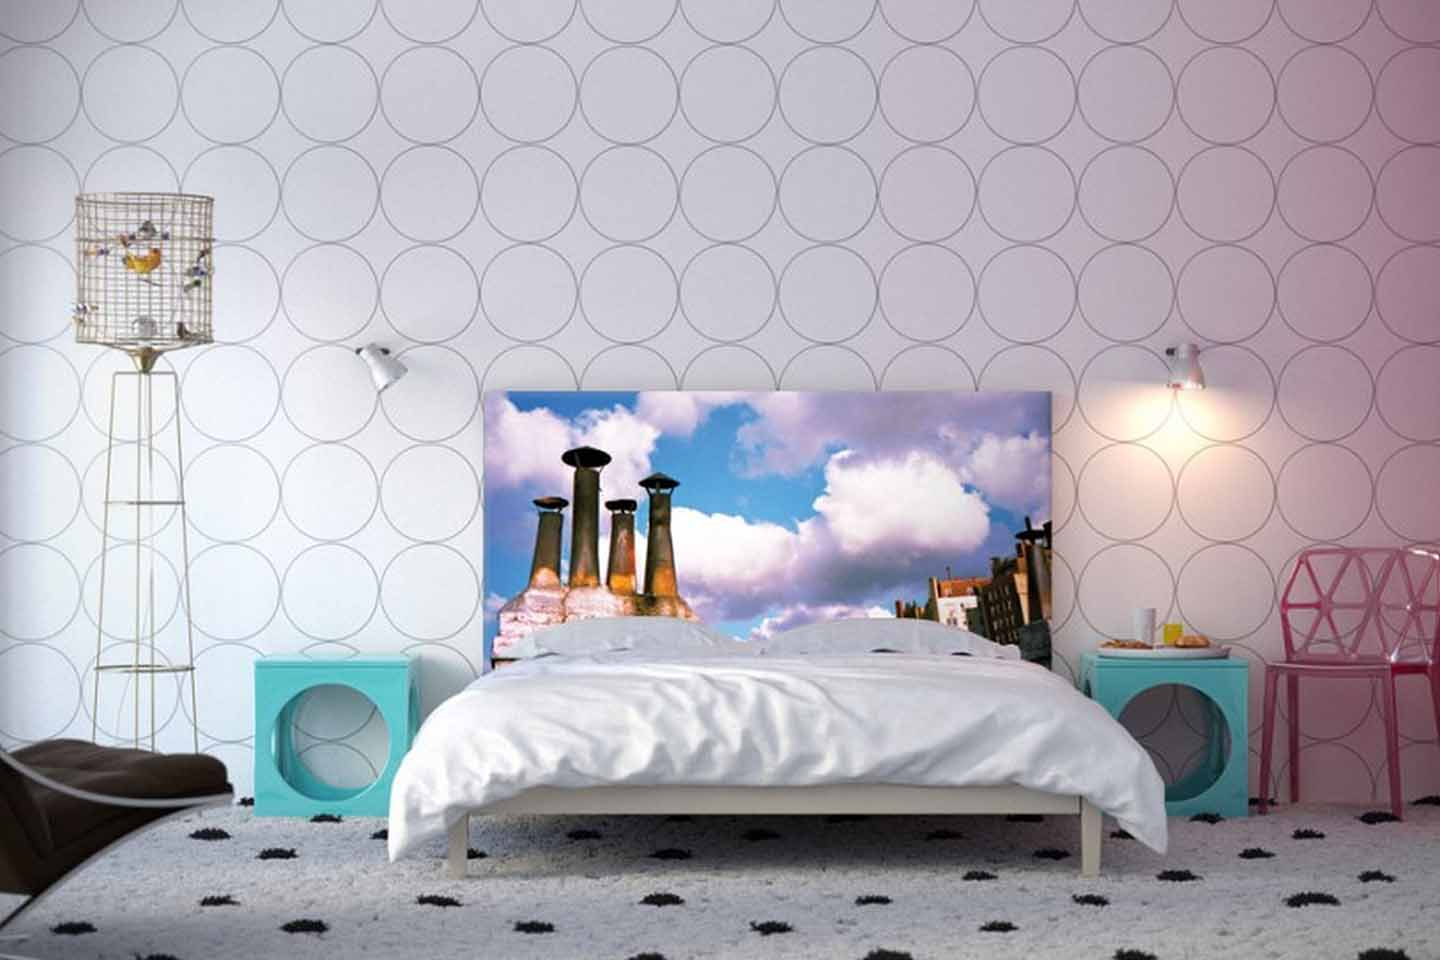 Lovely Imaginative Wallpaper For Bedroom